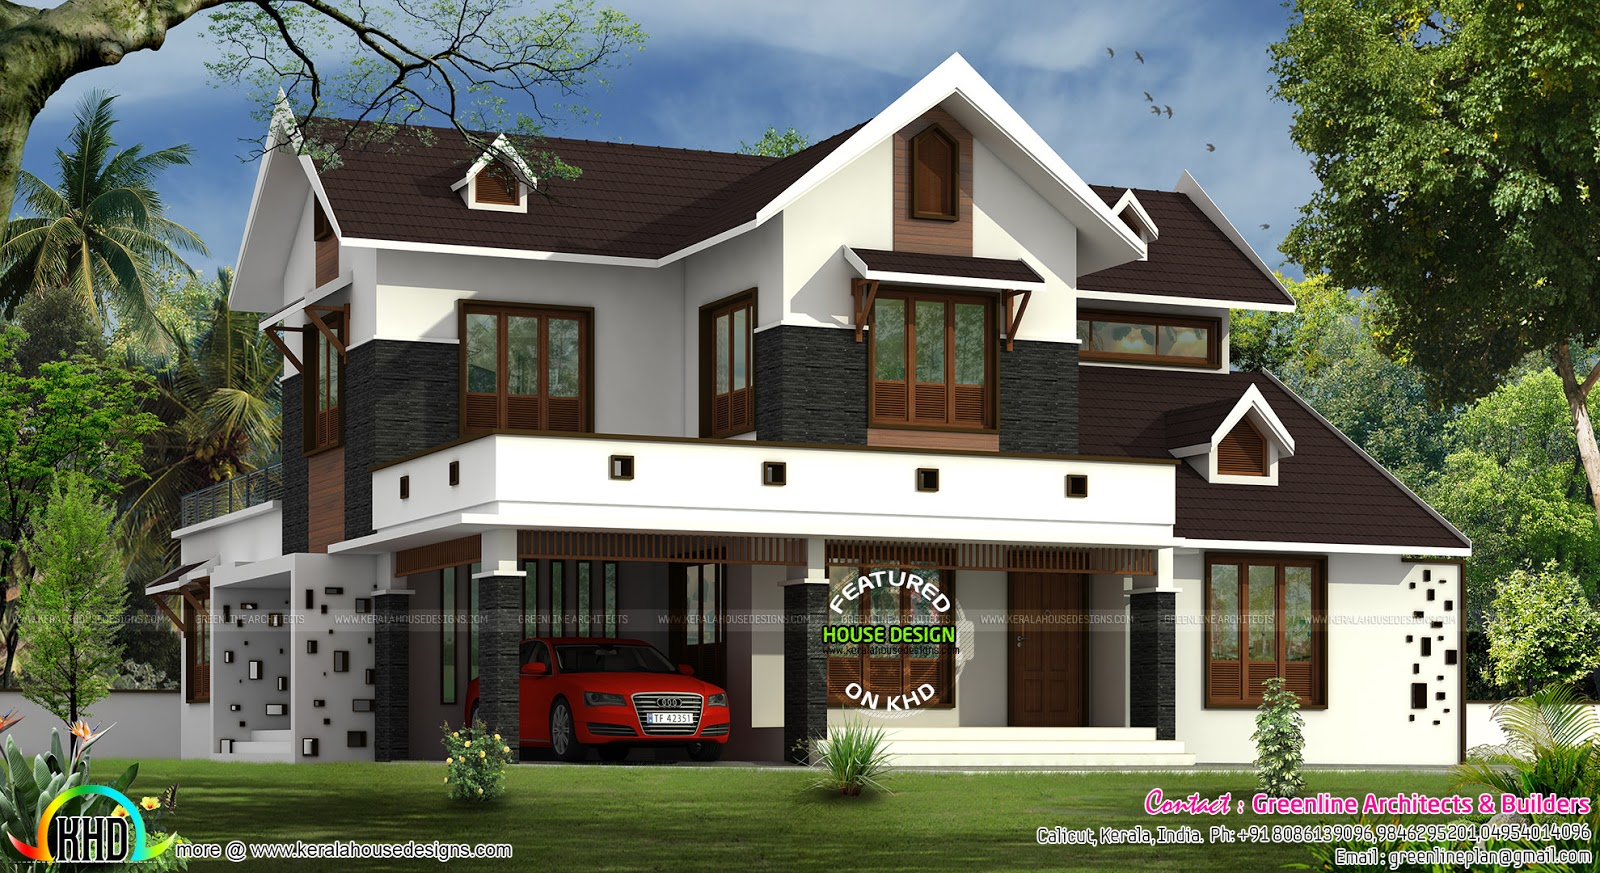 Cute Modern Home With Dormer Windows Kerala Home Design And Floor Plans 8000 Houses